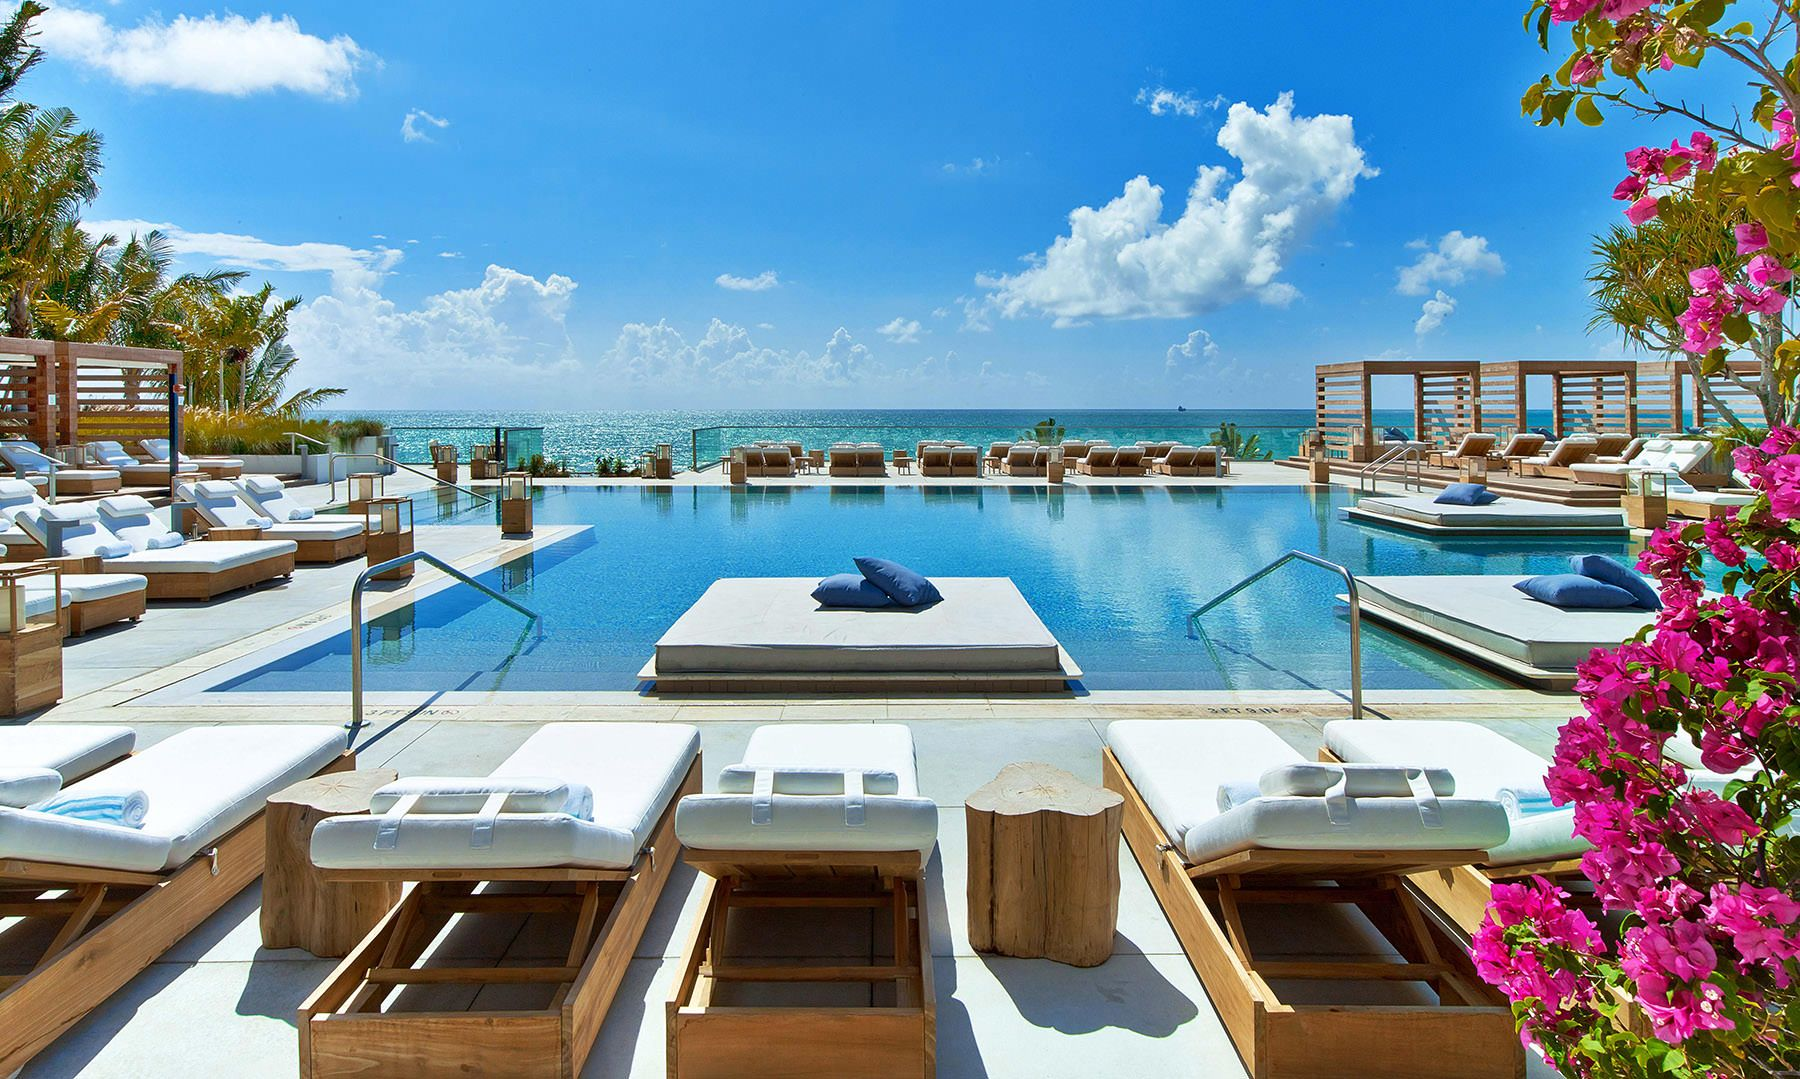 Pin By Daycation On Best Hotels In Miami For A Daycation South Beach Hotels Miami Hotels South Beach Miami Beach Hotels